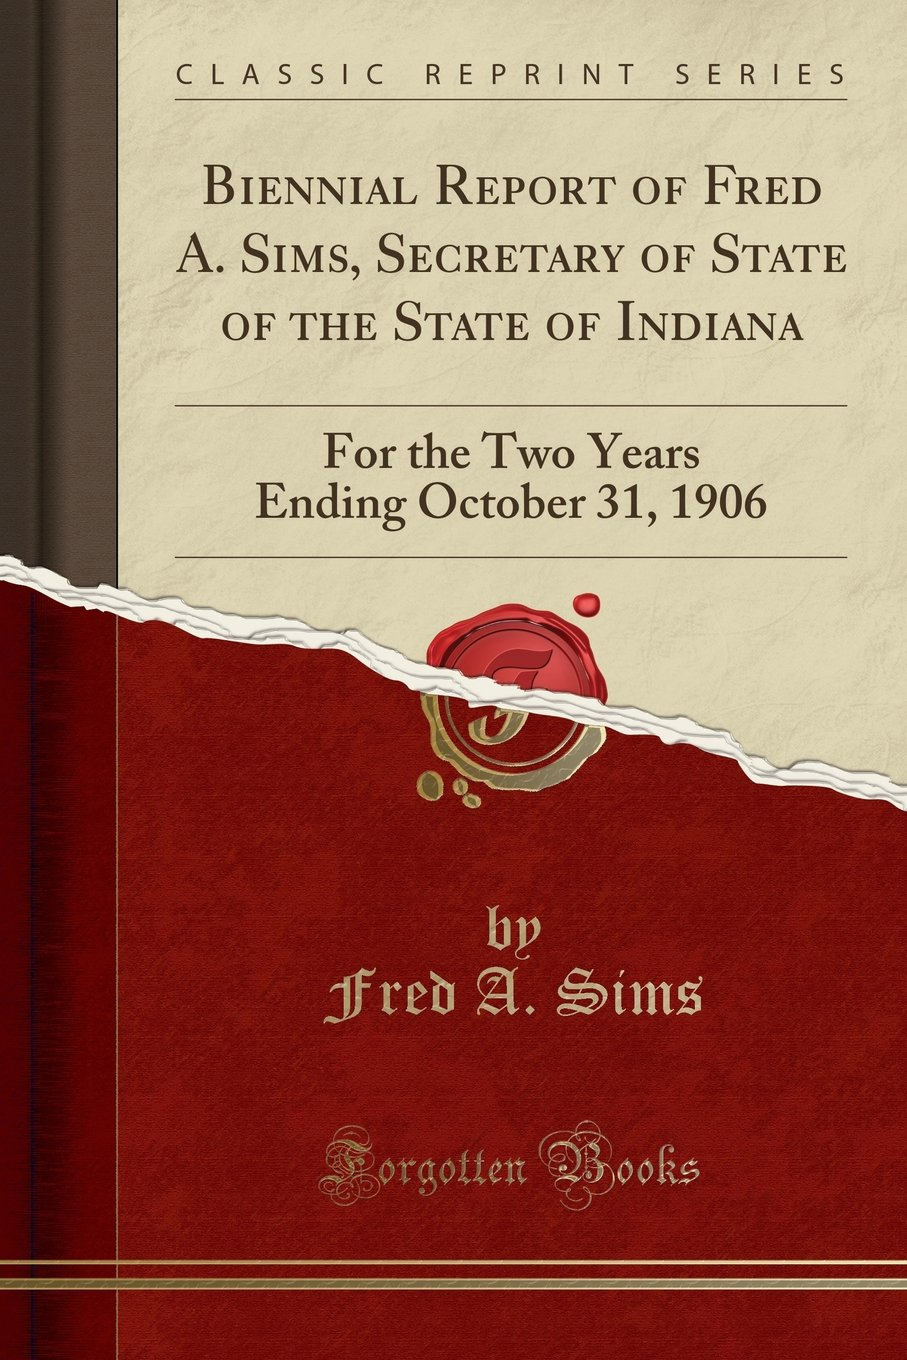 Download Biennial Report of Fred A. Sims, Secretary of State of the State of Indiana: For the Two Years Ending October 31, 1906 (Classic Reprint) PDF